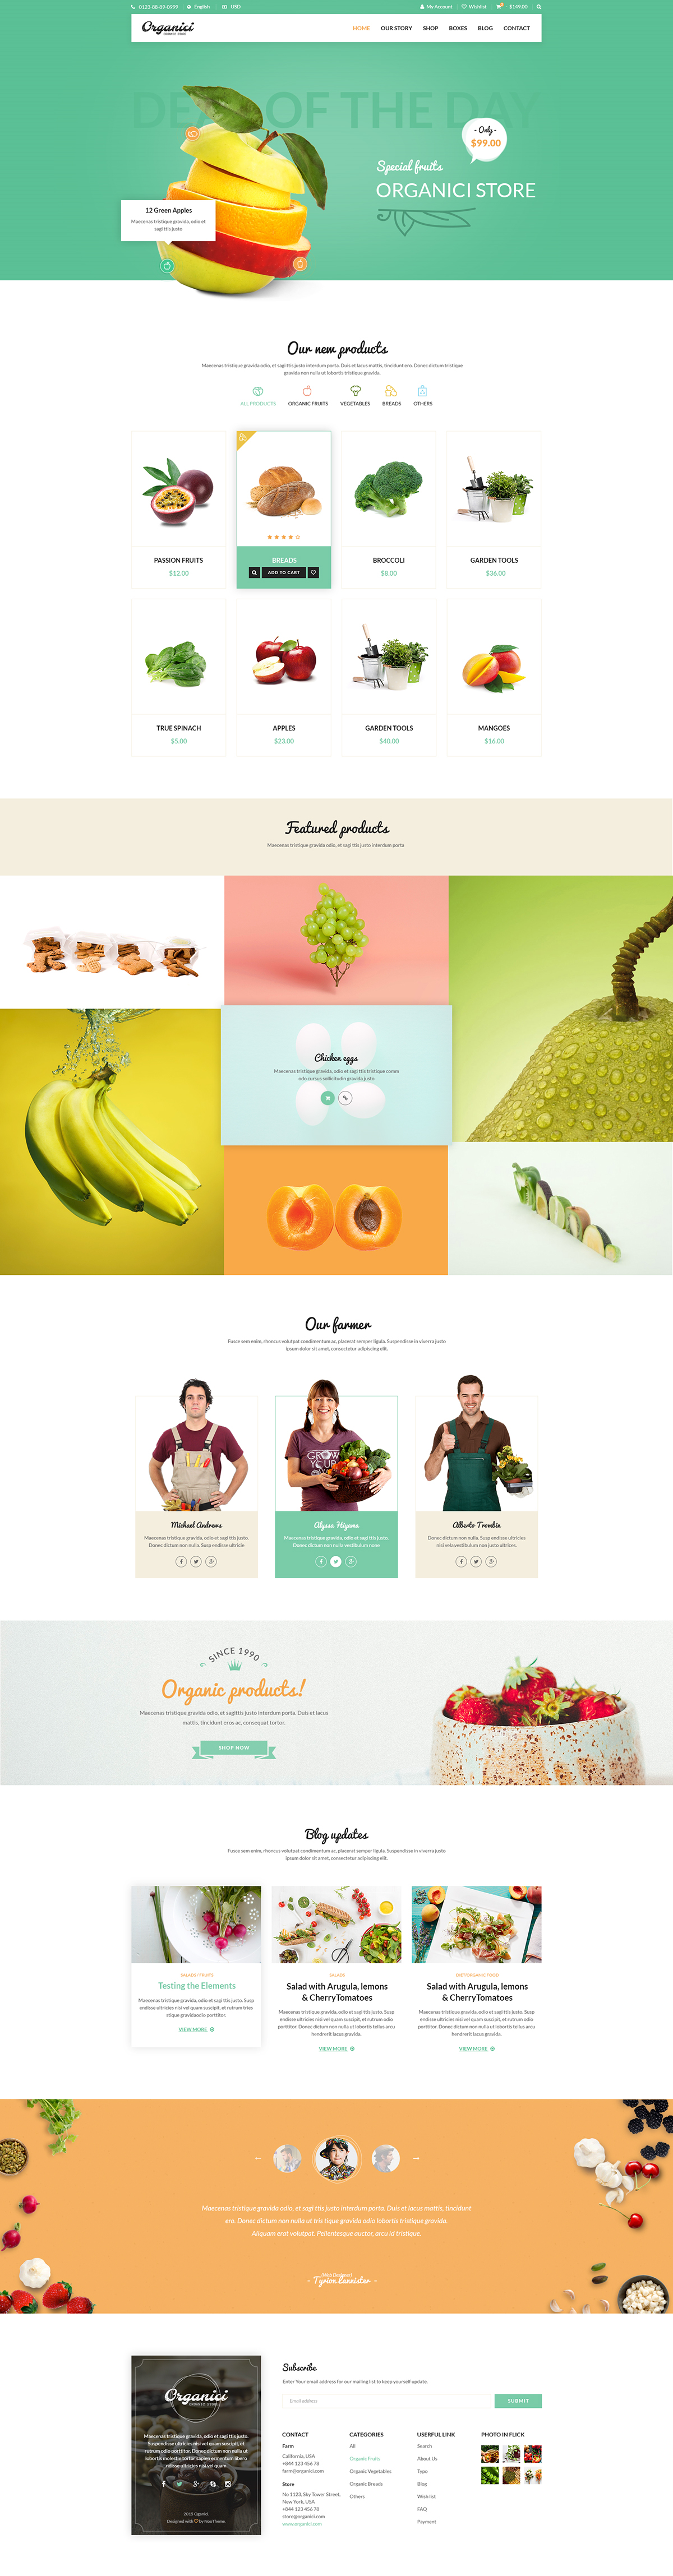 Lpo Template Organici Is The Premium Psd Template For Organic Food Shopbuilt .